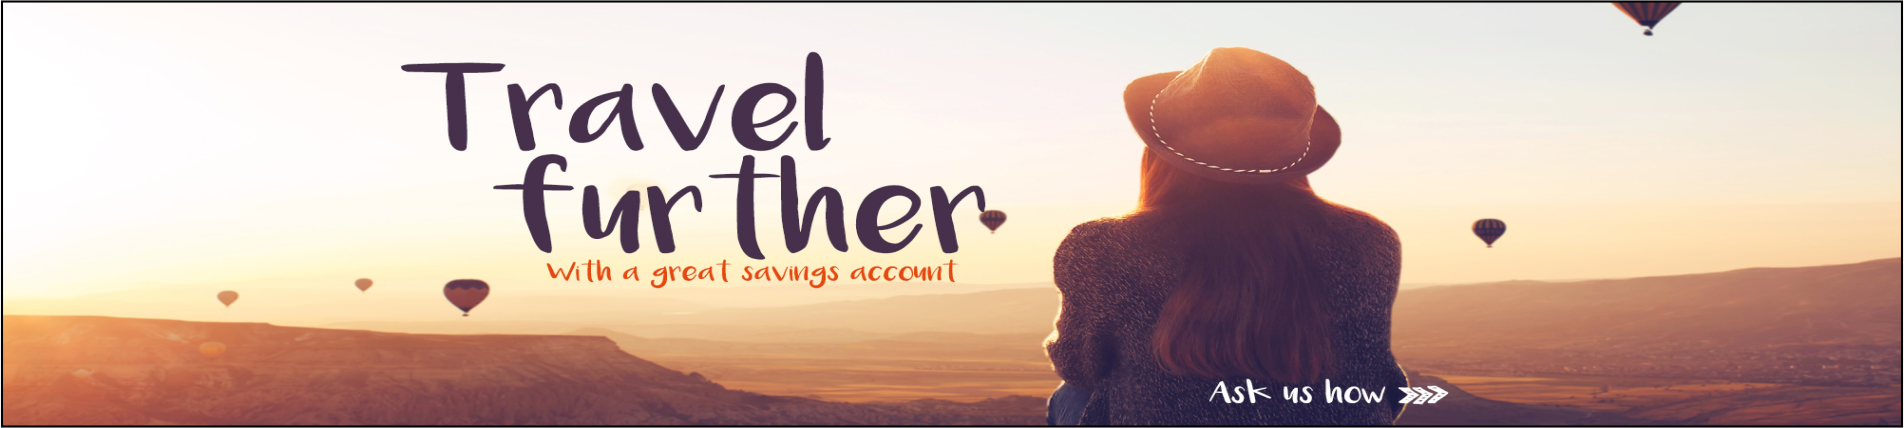 Travel Further with Savings